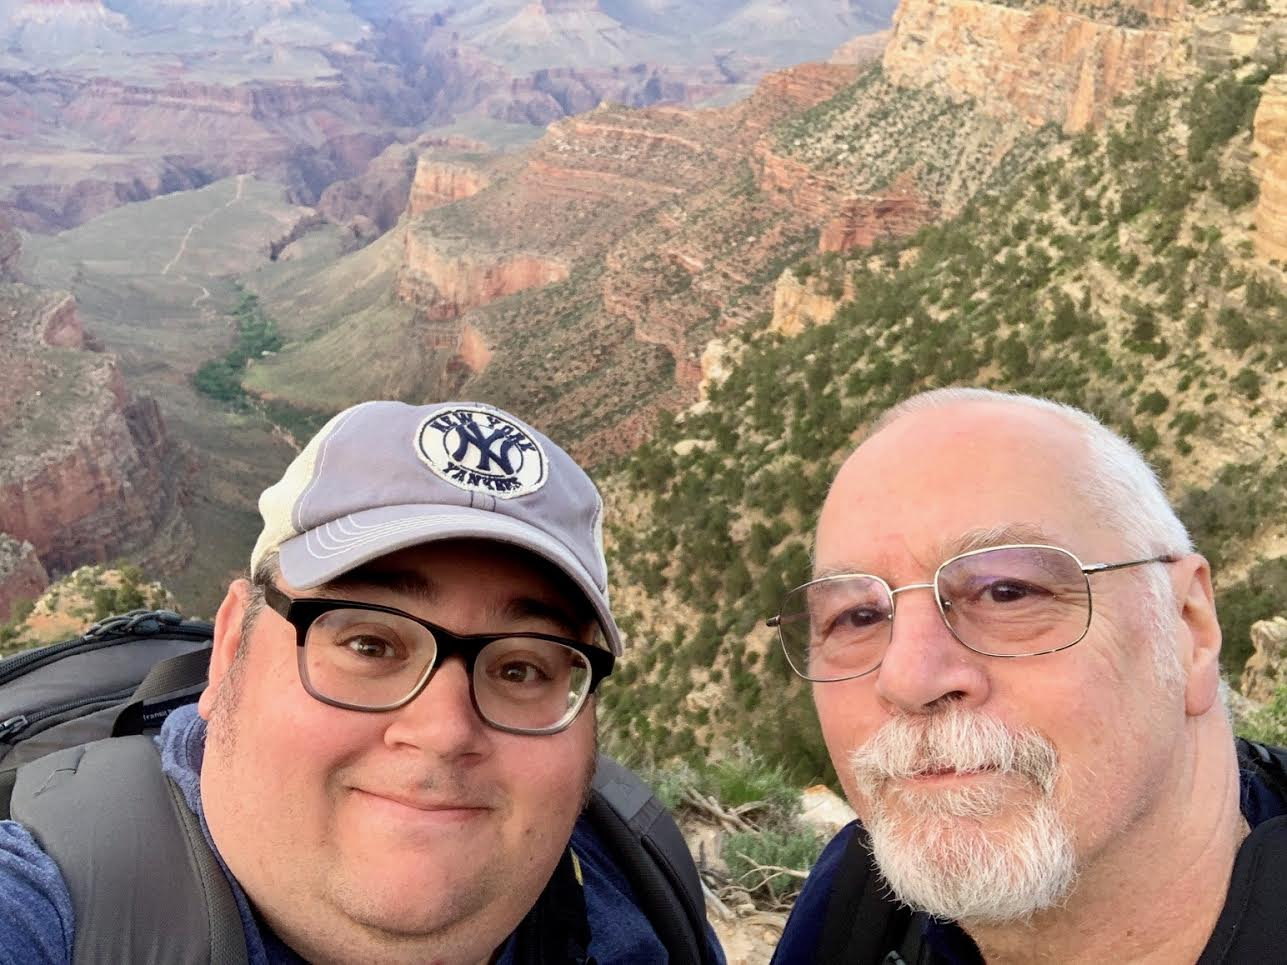 My father and I at the Bright Angel Trail in the South Rim of the Grand Canyon